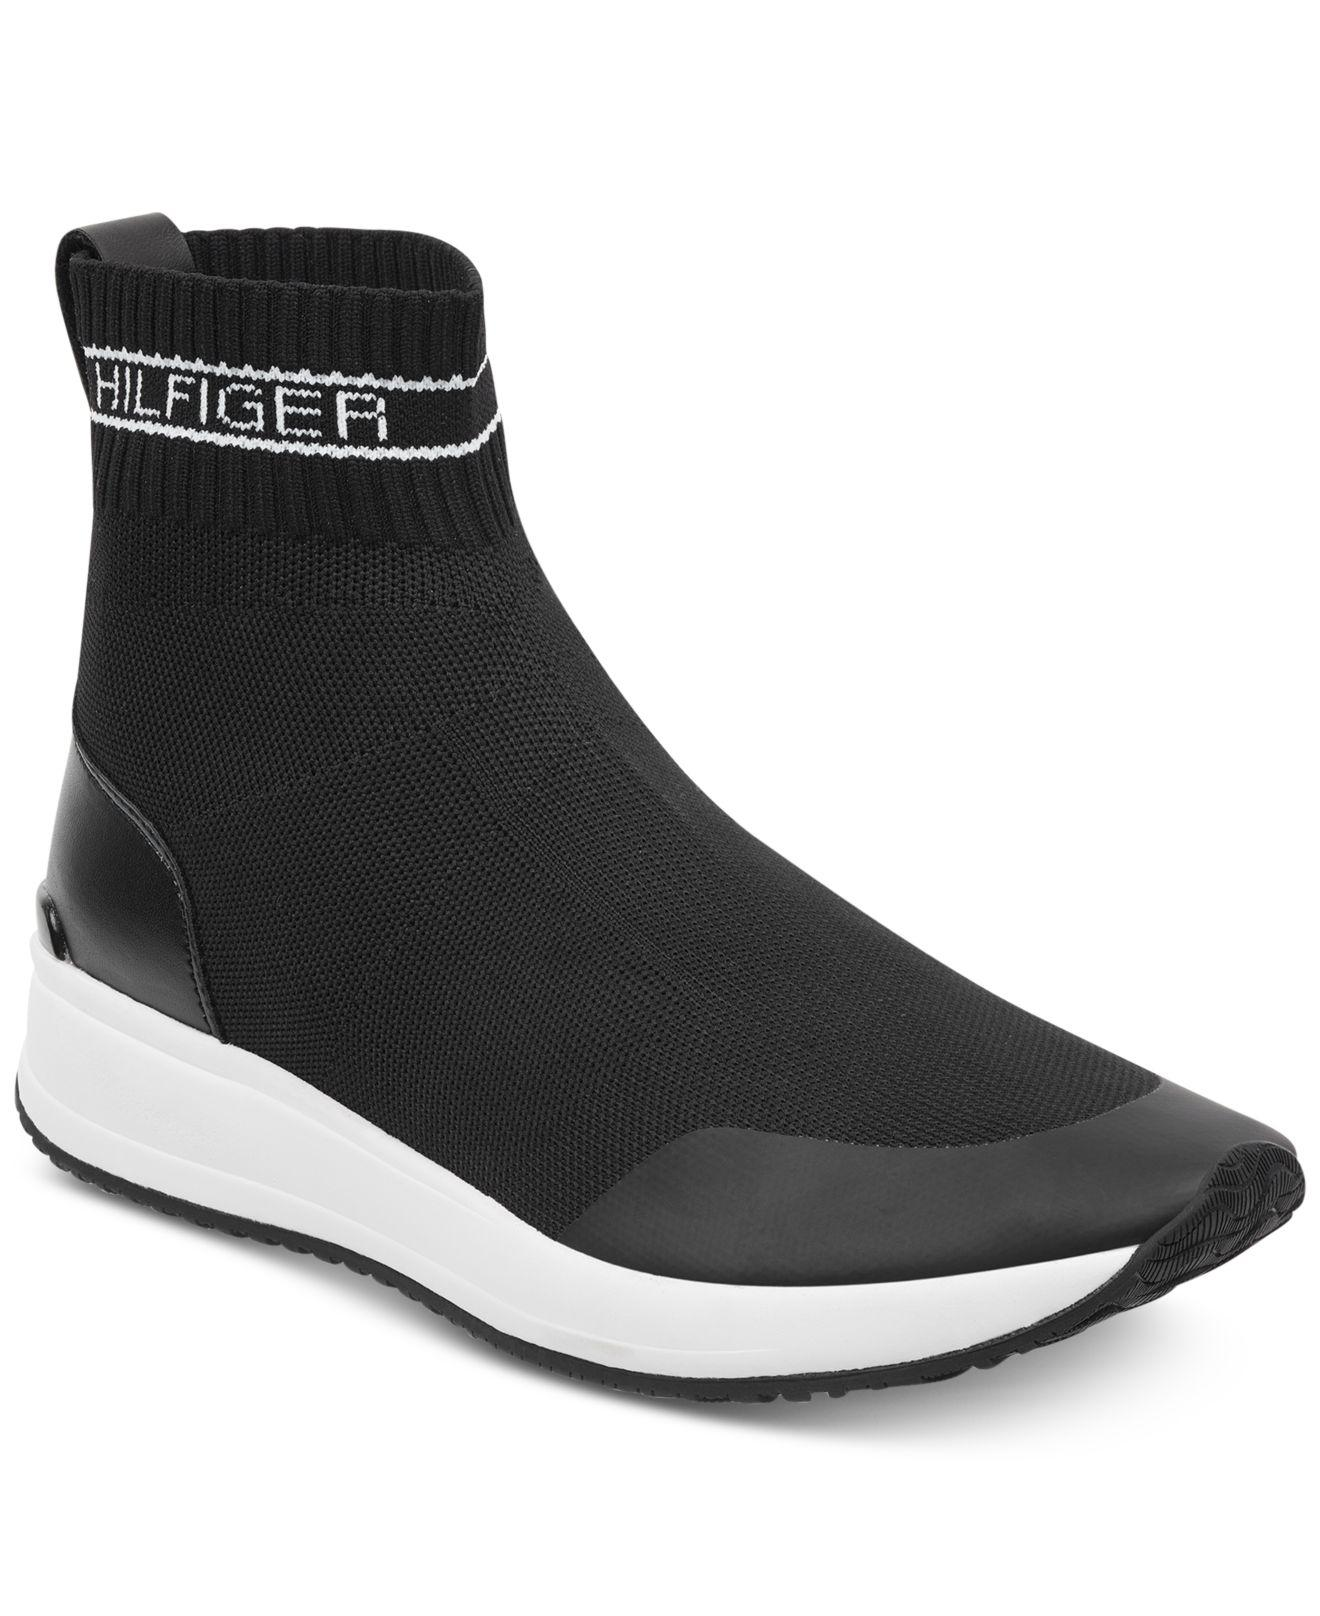 Tommy Hilfiger Reco Sock Sneakers in